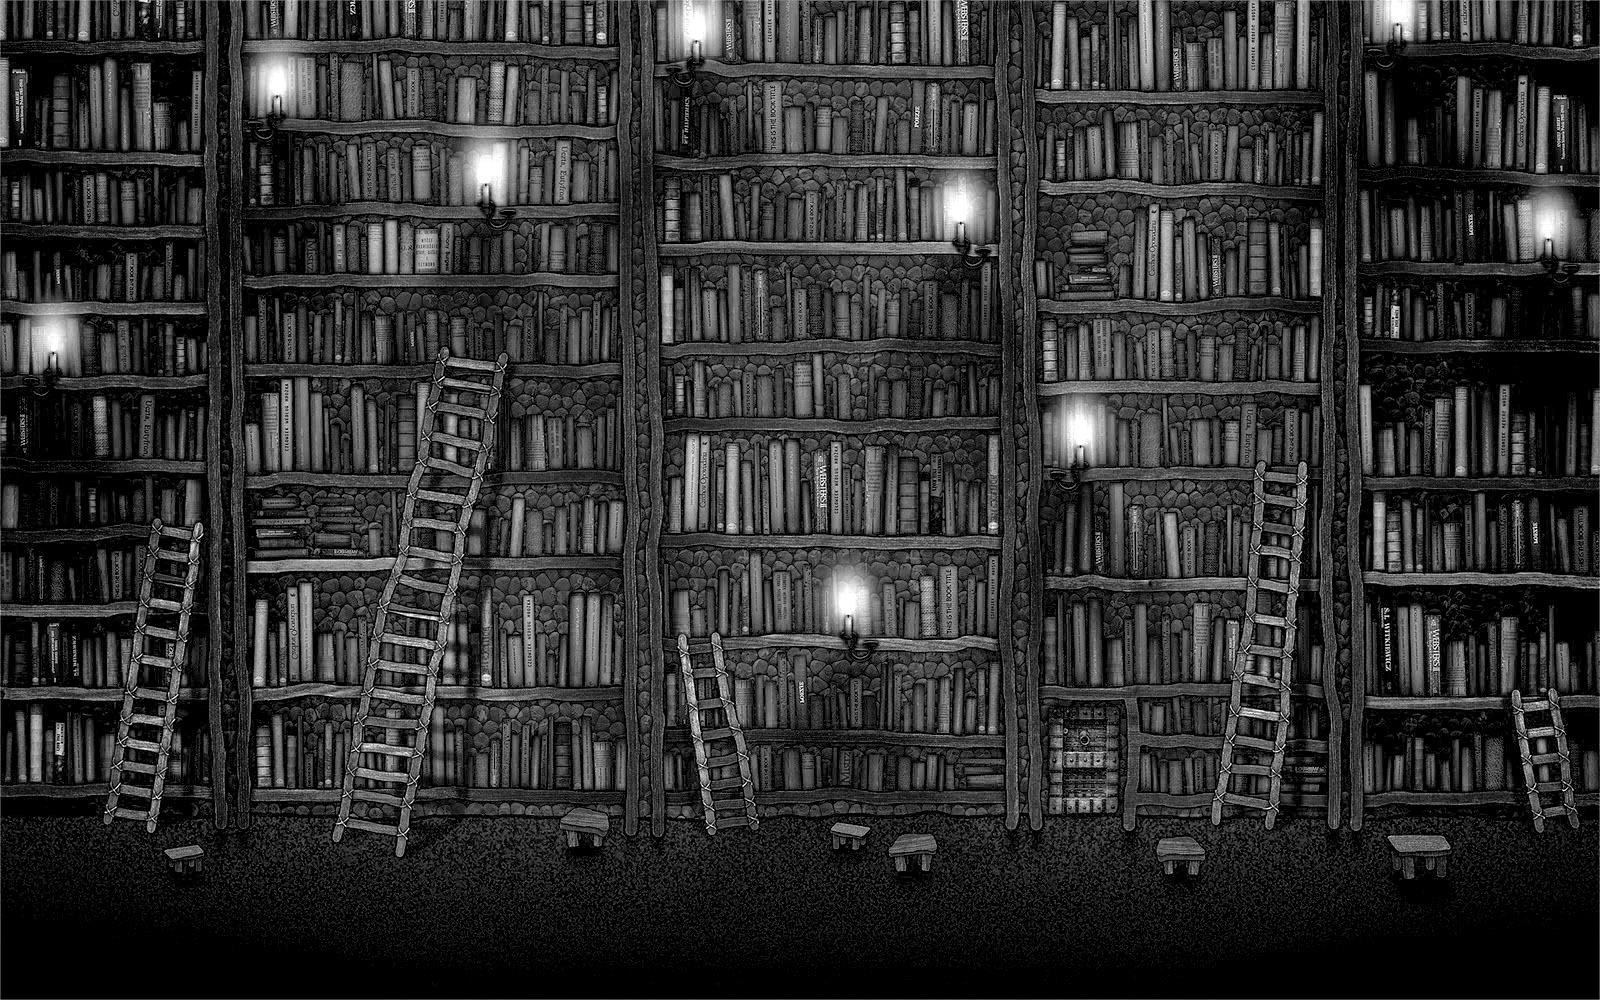 Library Wallpaper Desktop - WallpaperSafari